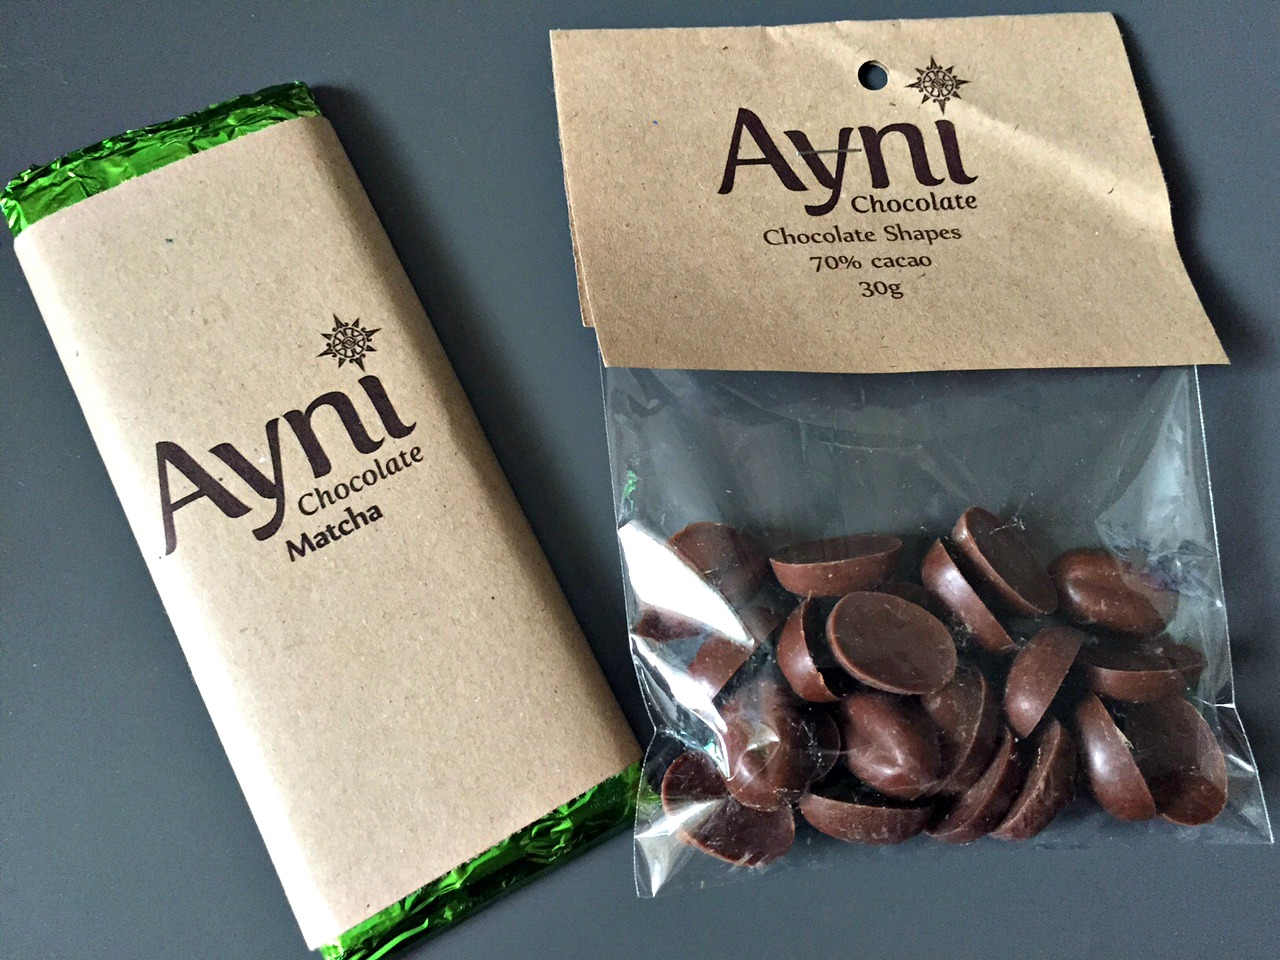 Ayni matcha chocolate and 70% chocolate shapes